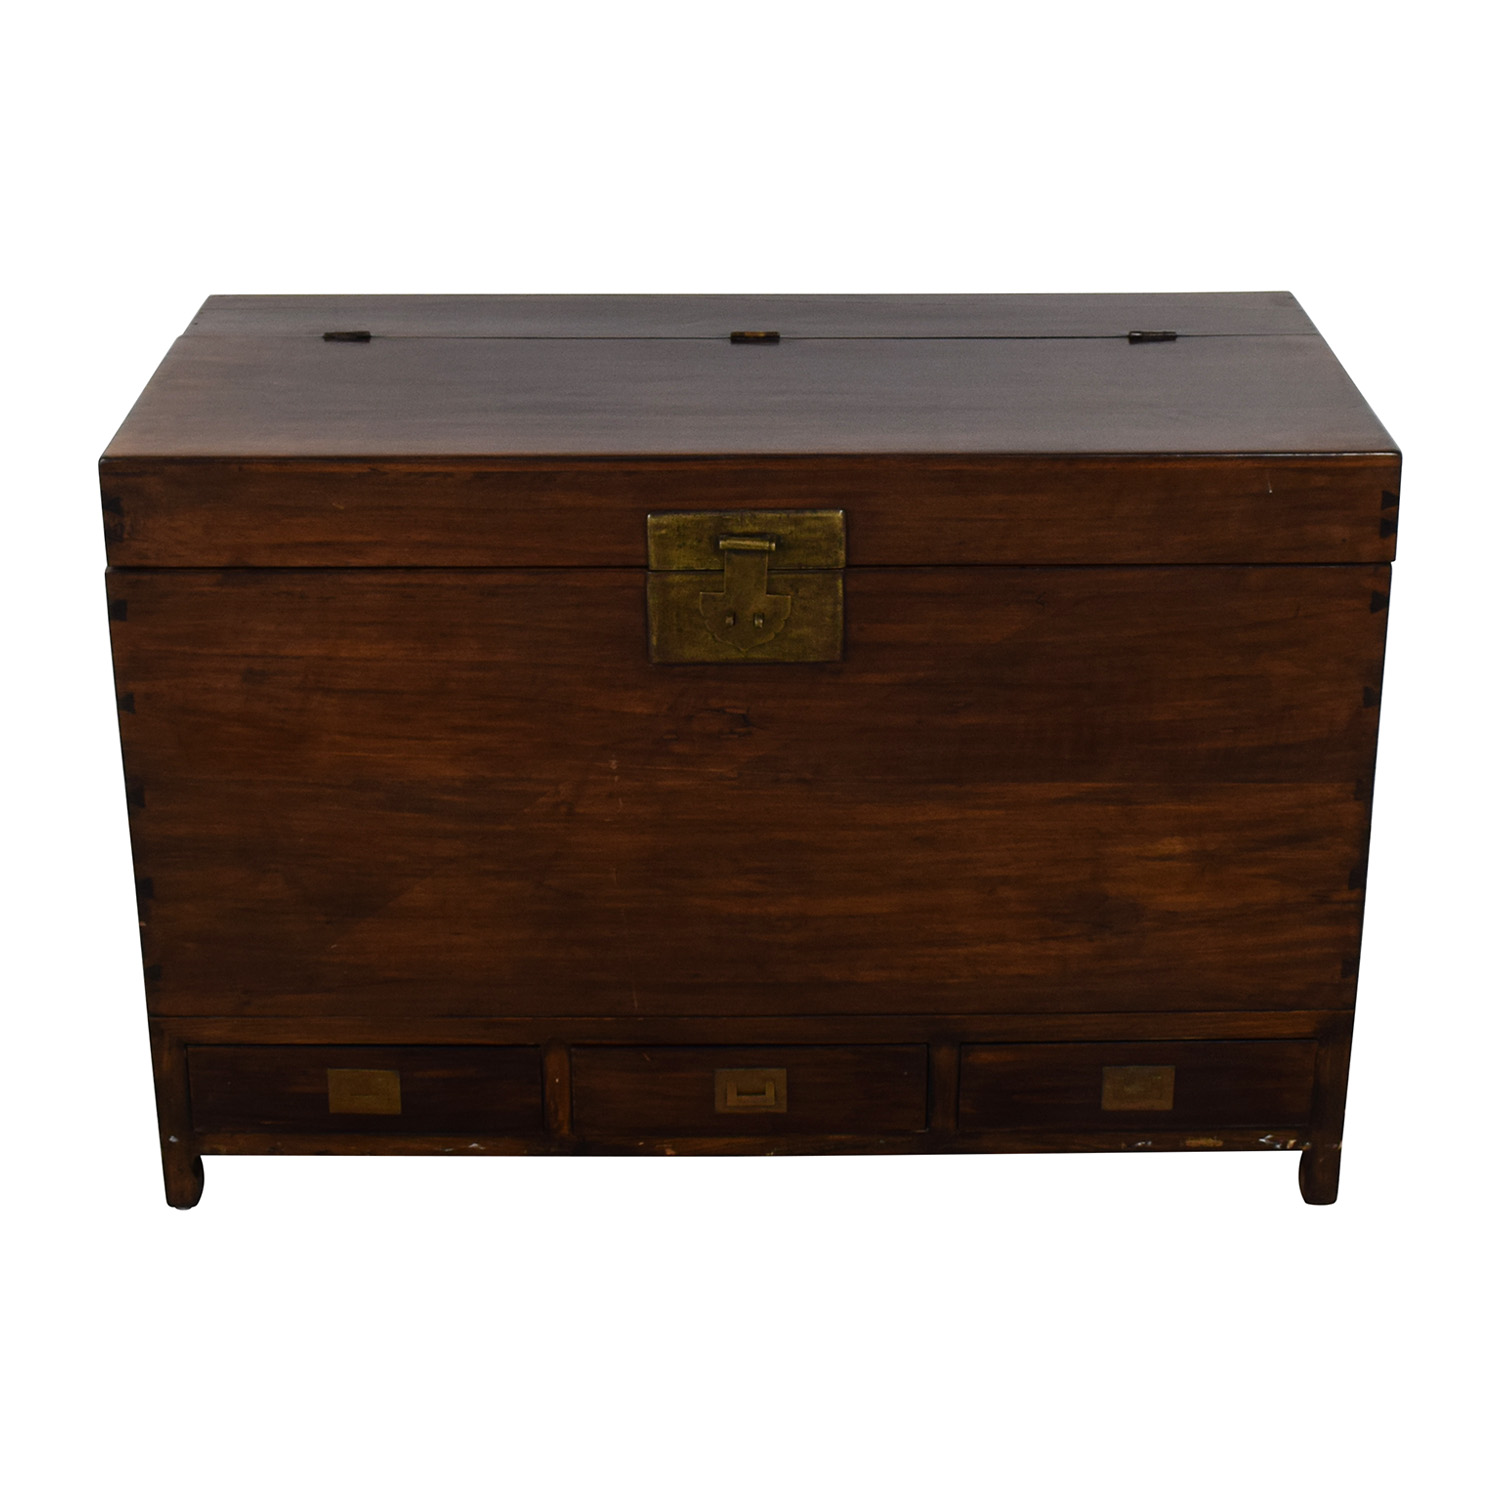 73 Off Decorative Storage Trunk Storage